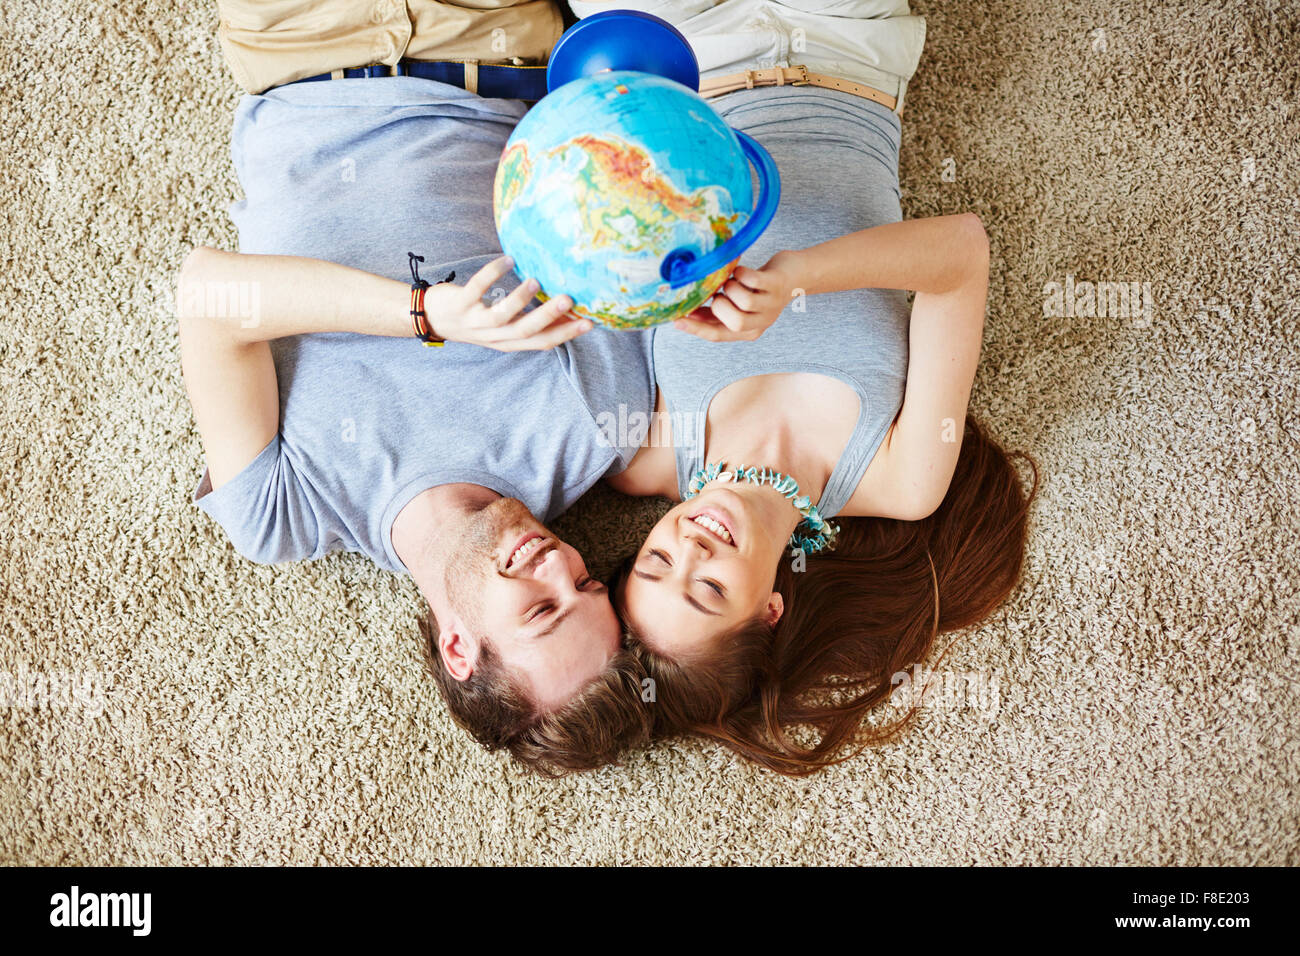 Restful couple with globe making plans for vacation - Stock Image